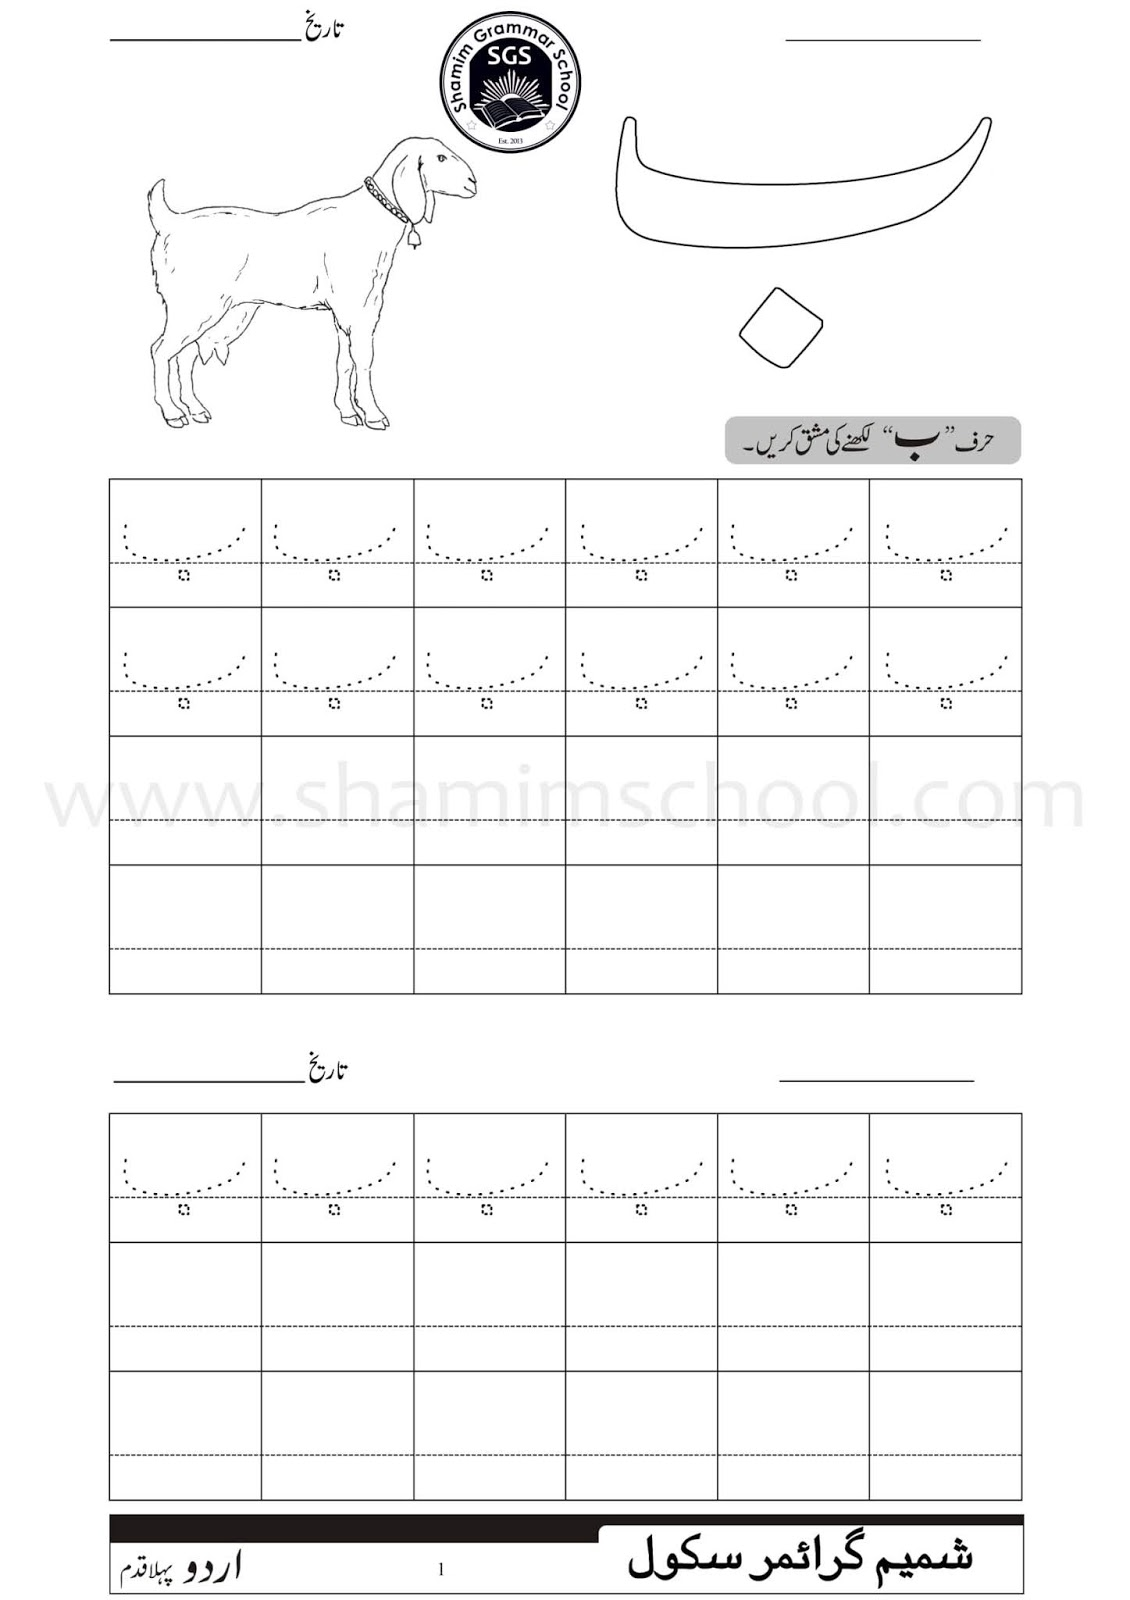 Work Sheets For Pre Standards Math English Science Urdu